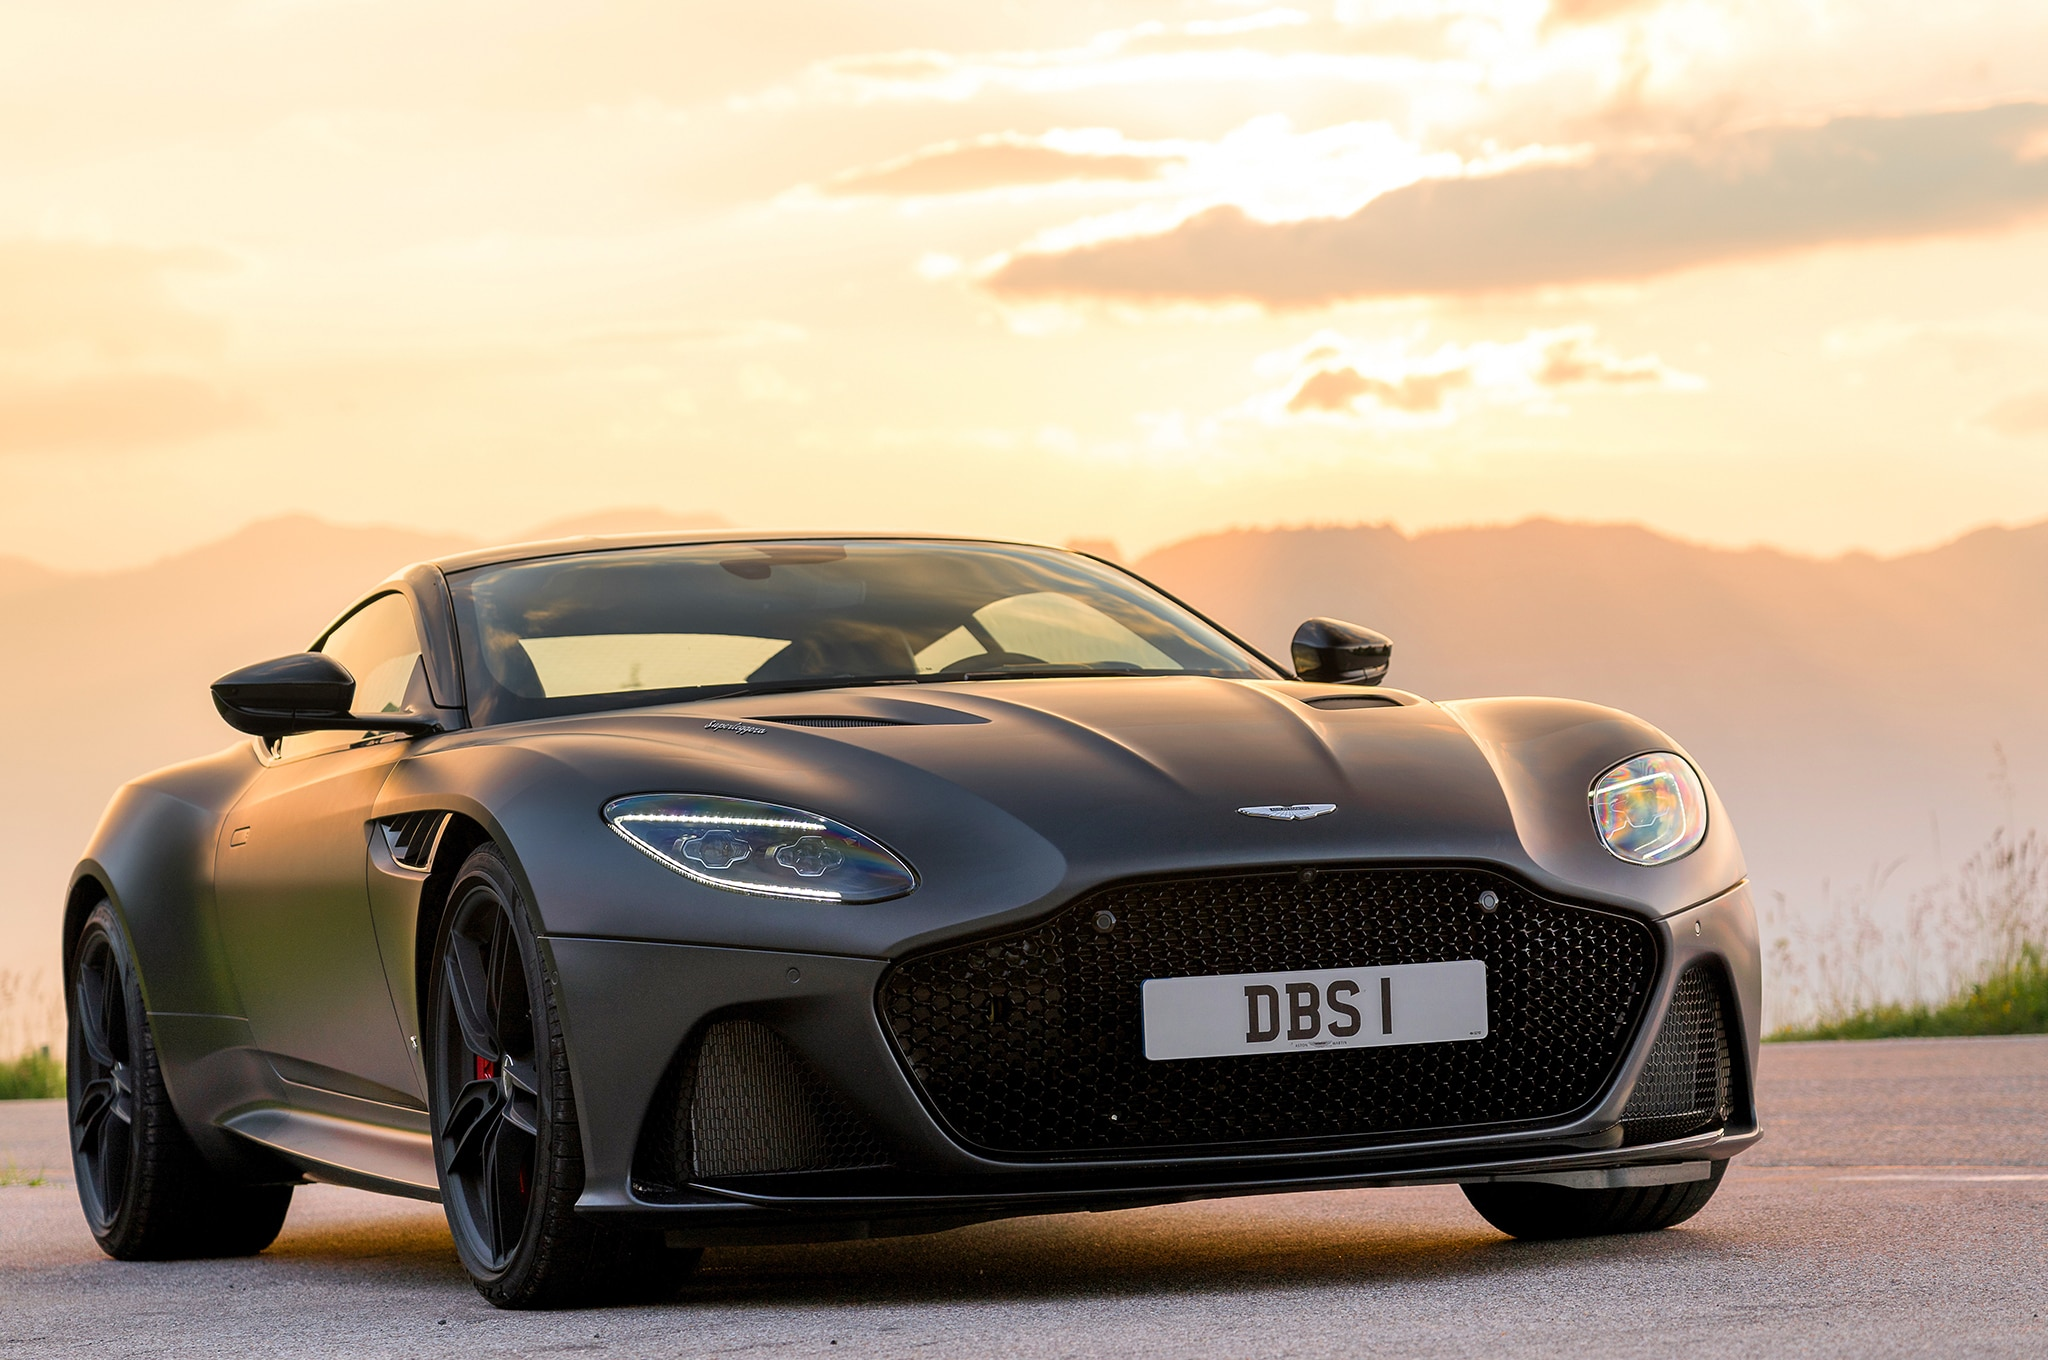 2019 Aston Martin DBS Superleggera Satin Xenon Grey 67